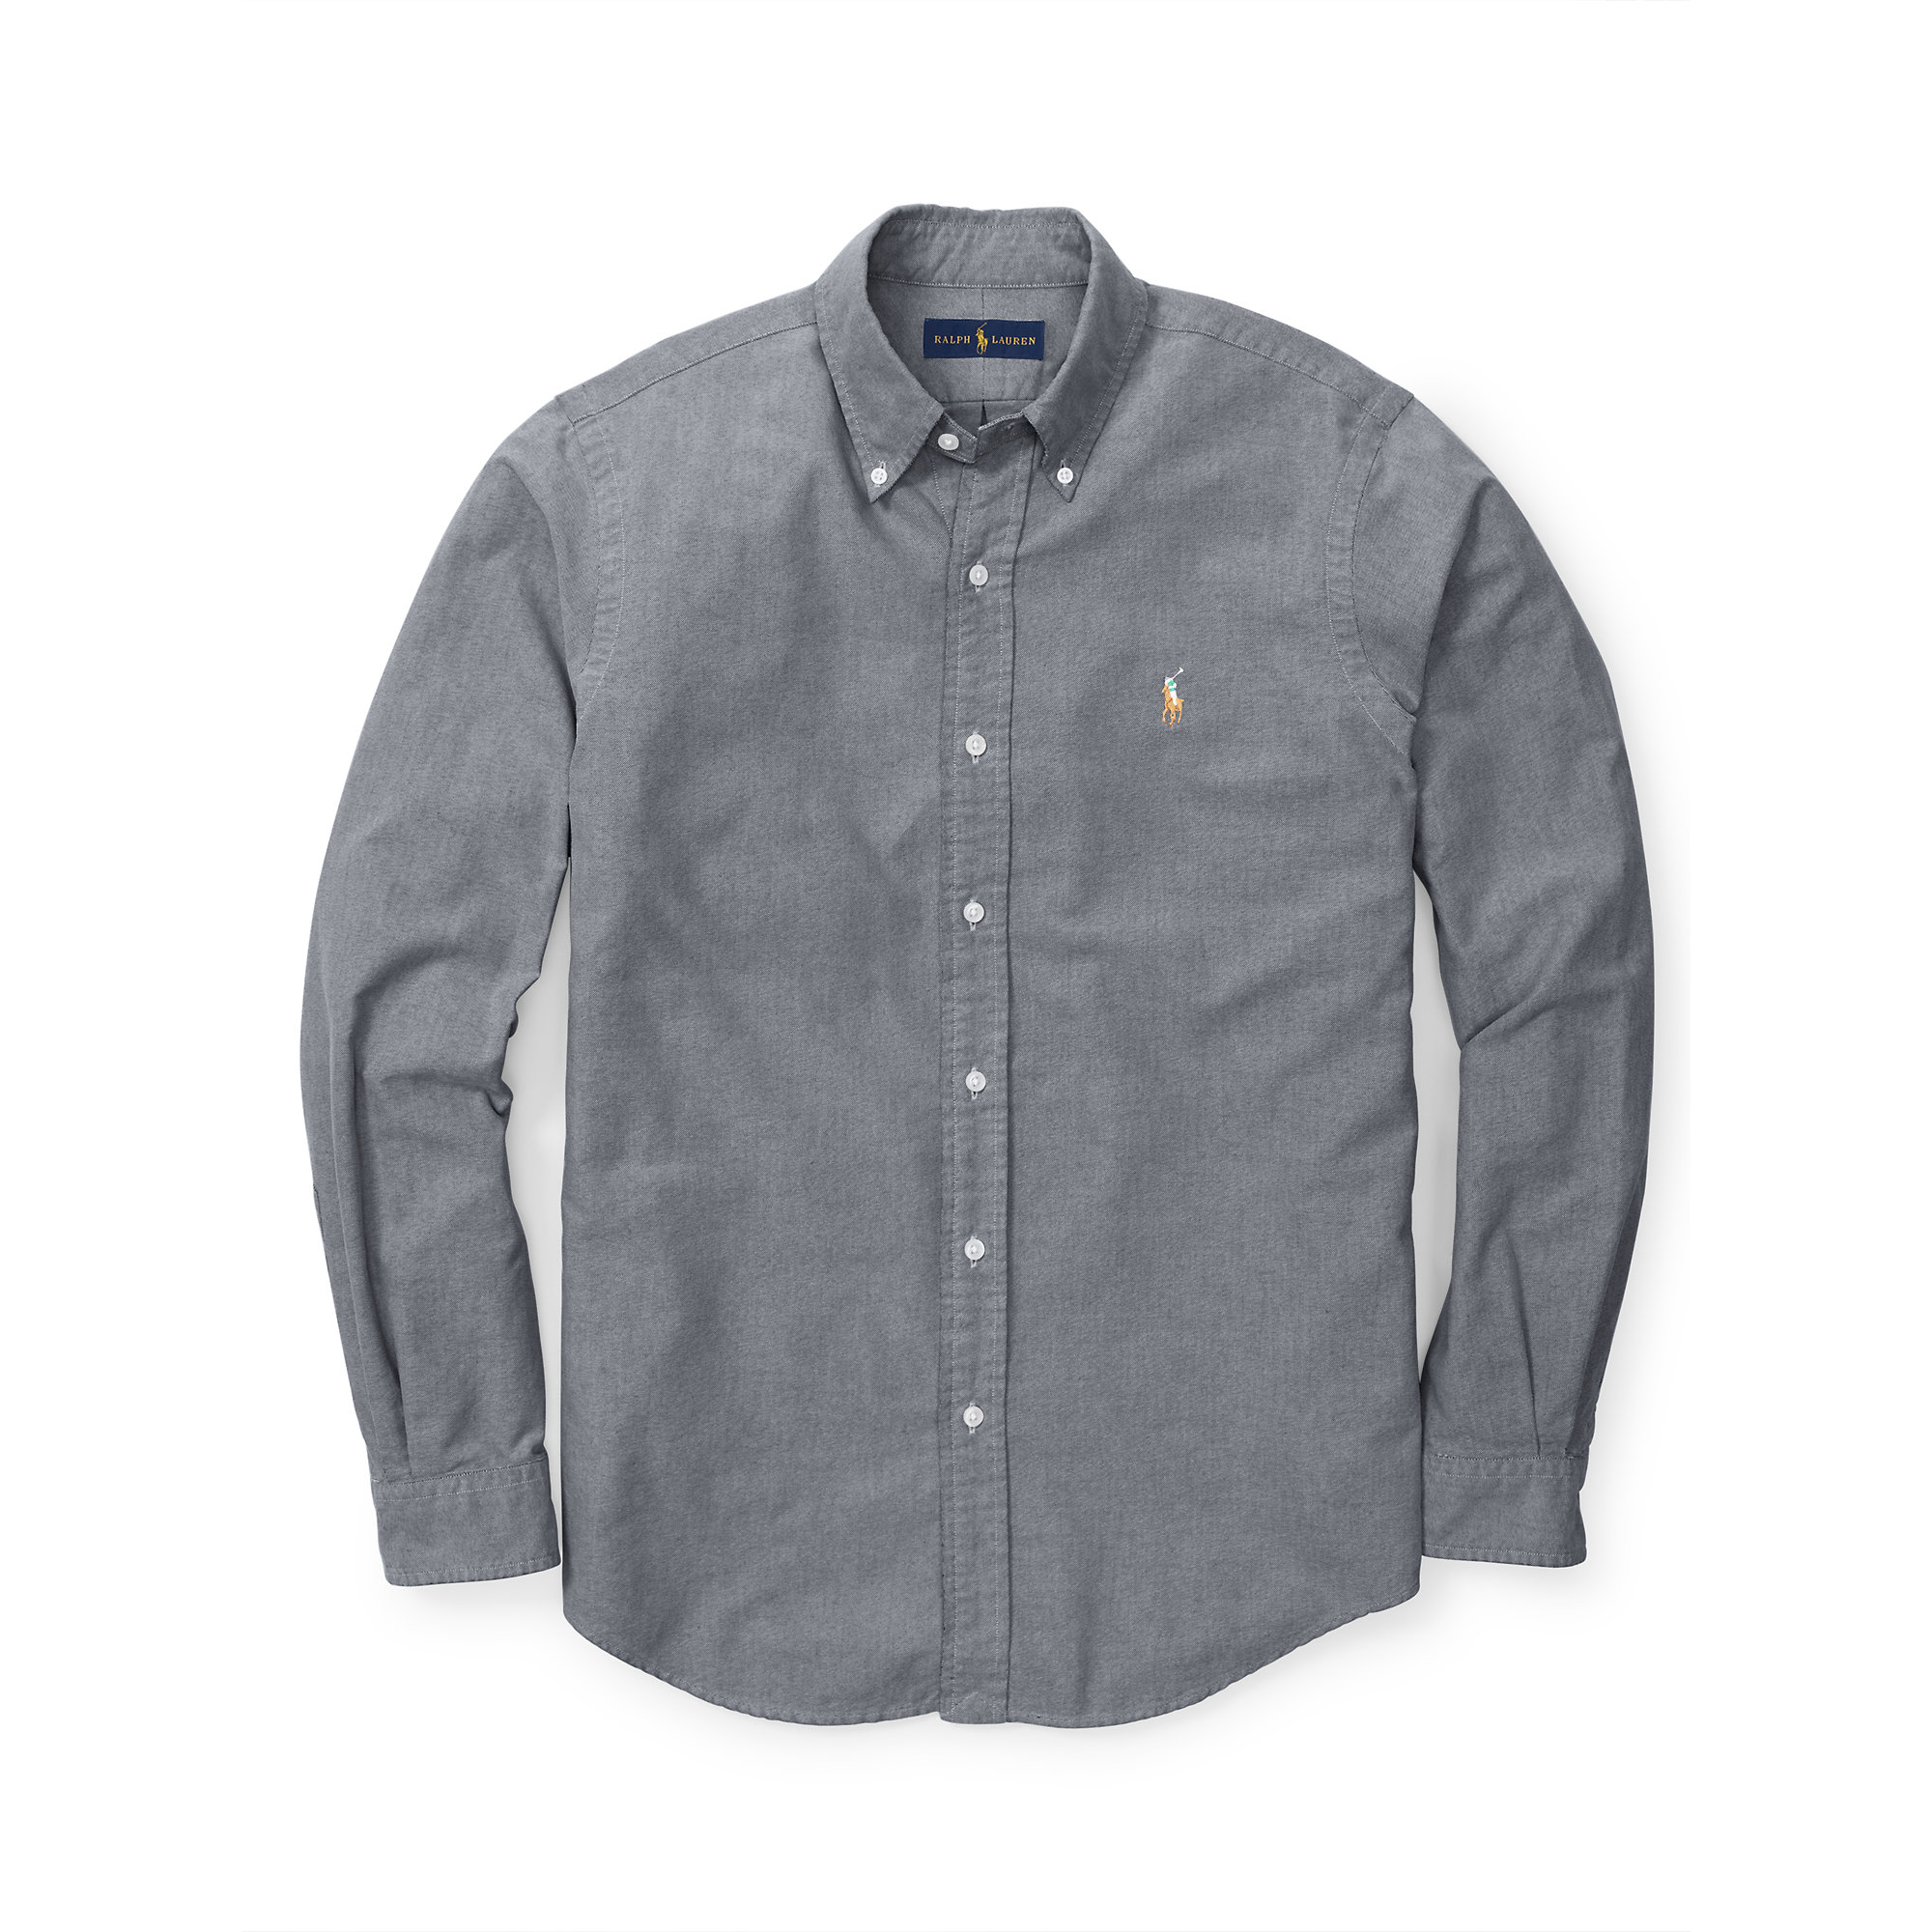 Lyst - Polo Ralph Lauren Solid Oxford Sport Shirt in Gray for Men c87c9d13742